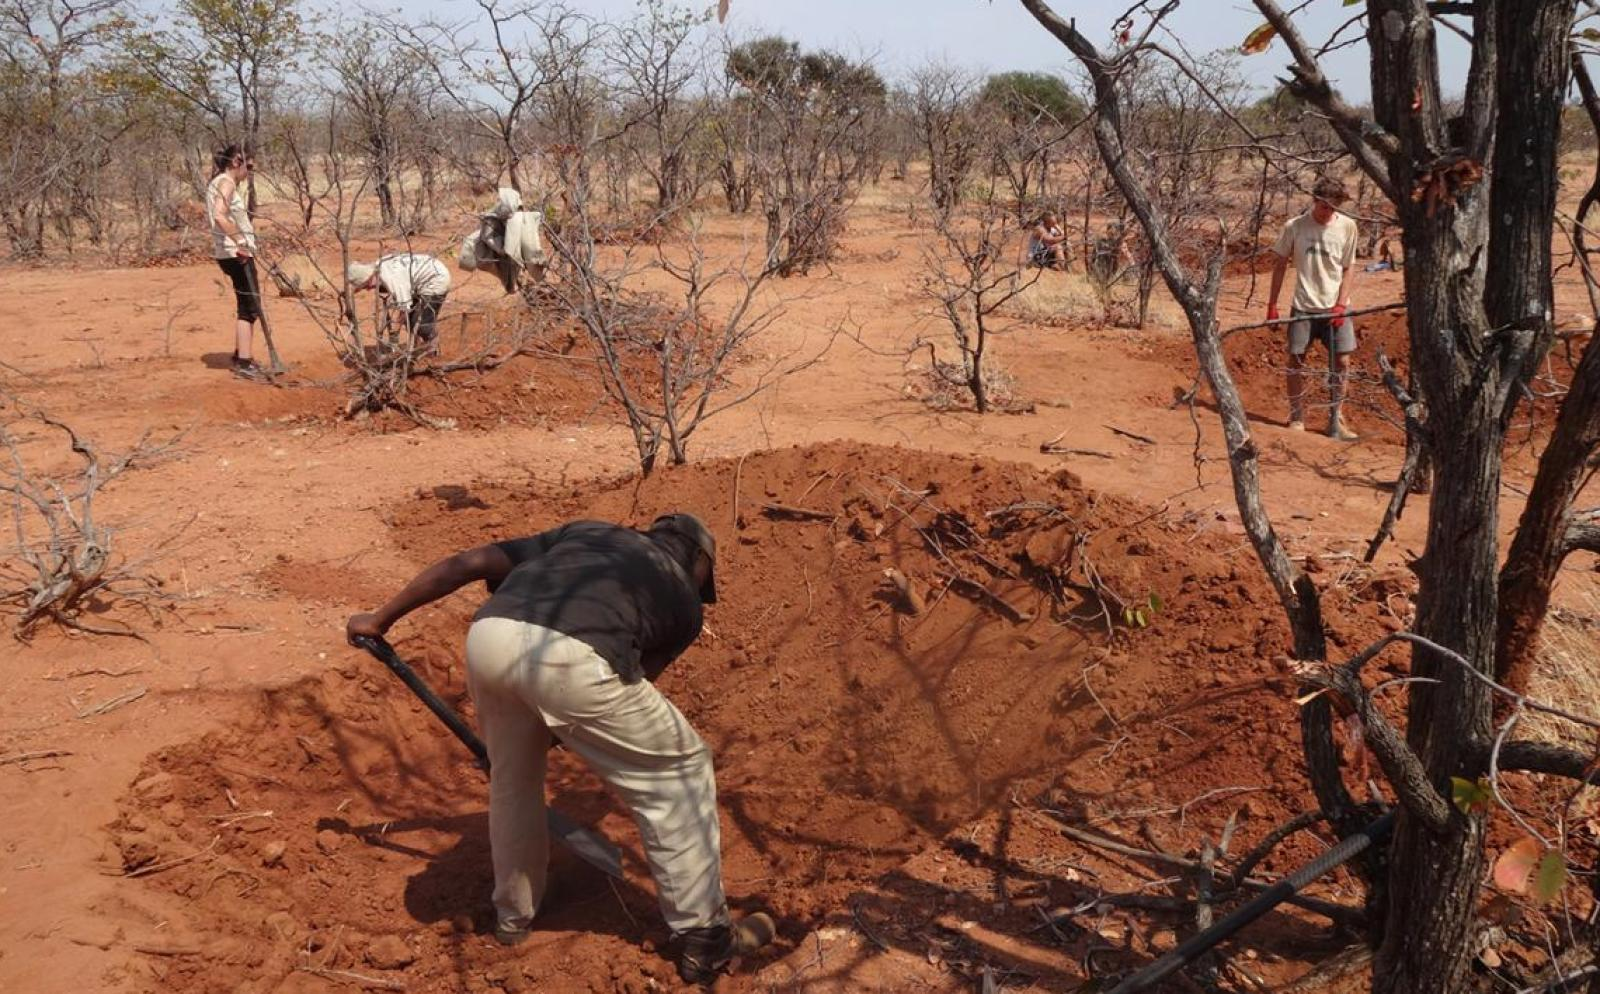 Volunteers are digging to build a waterhole for the wild animals in the Wild at Tuli nature reserve in Botswana